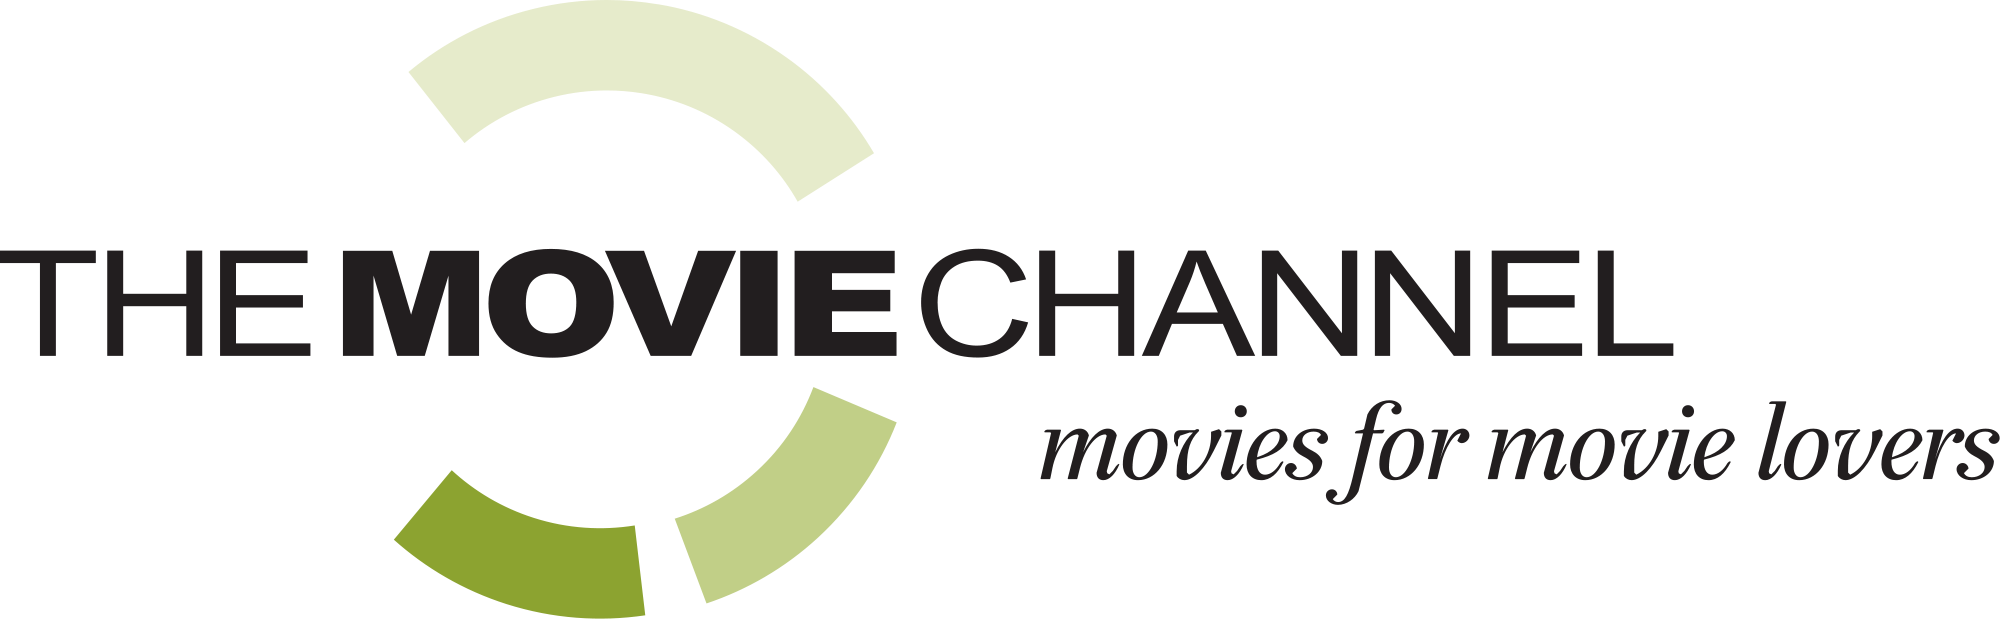 Movies vector logo. File the movie channel